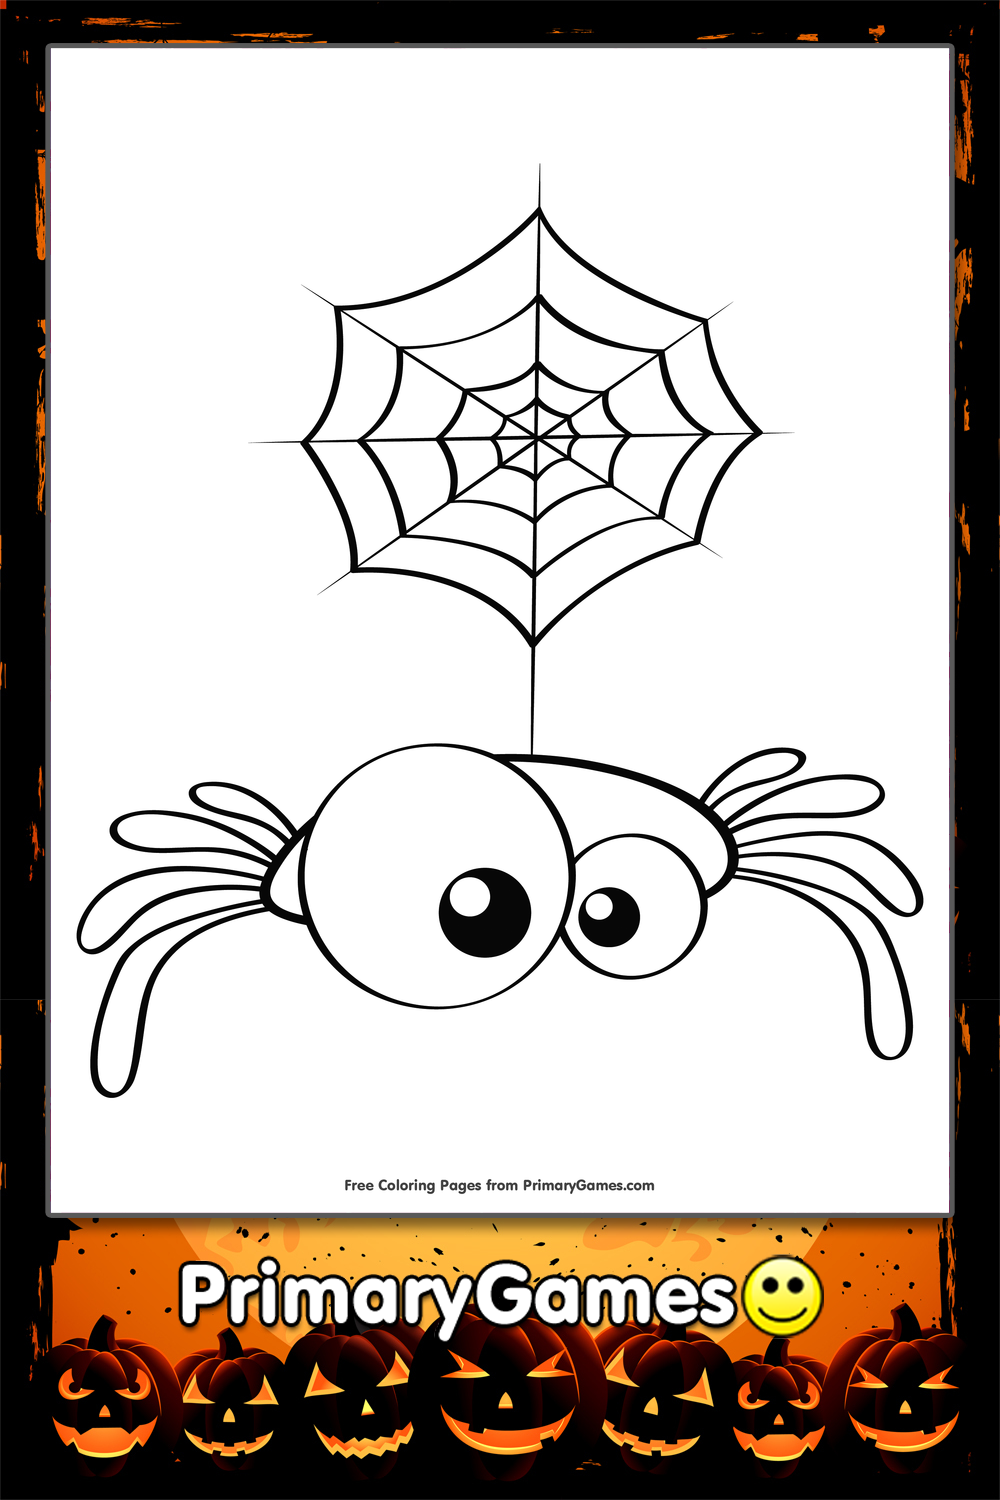 Cute Spider Coloring Page | Printable Halloween Coloring ...